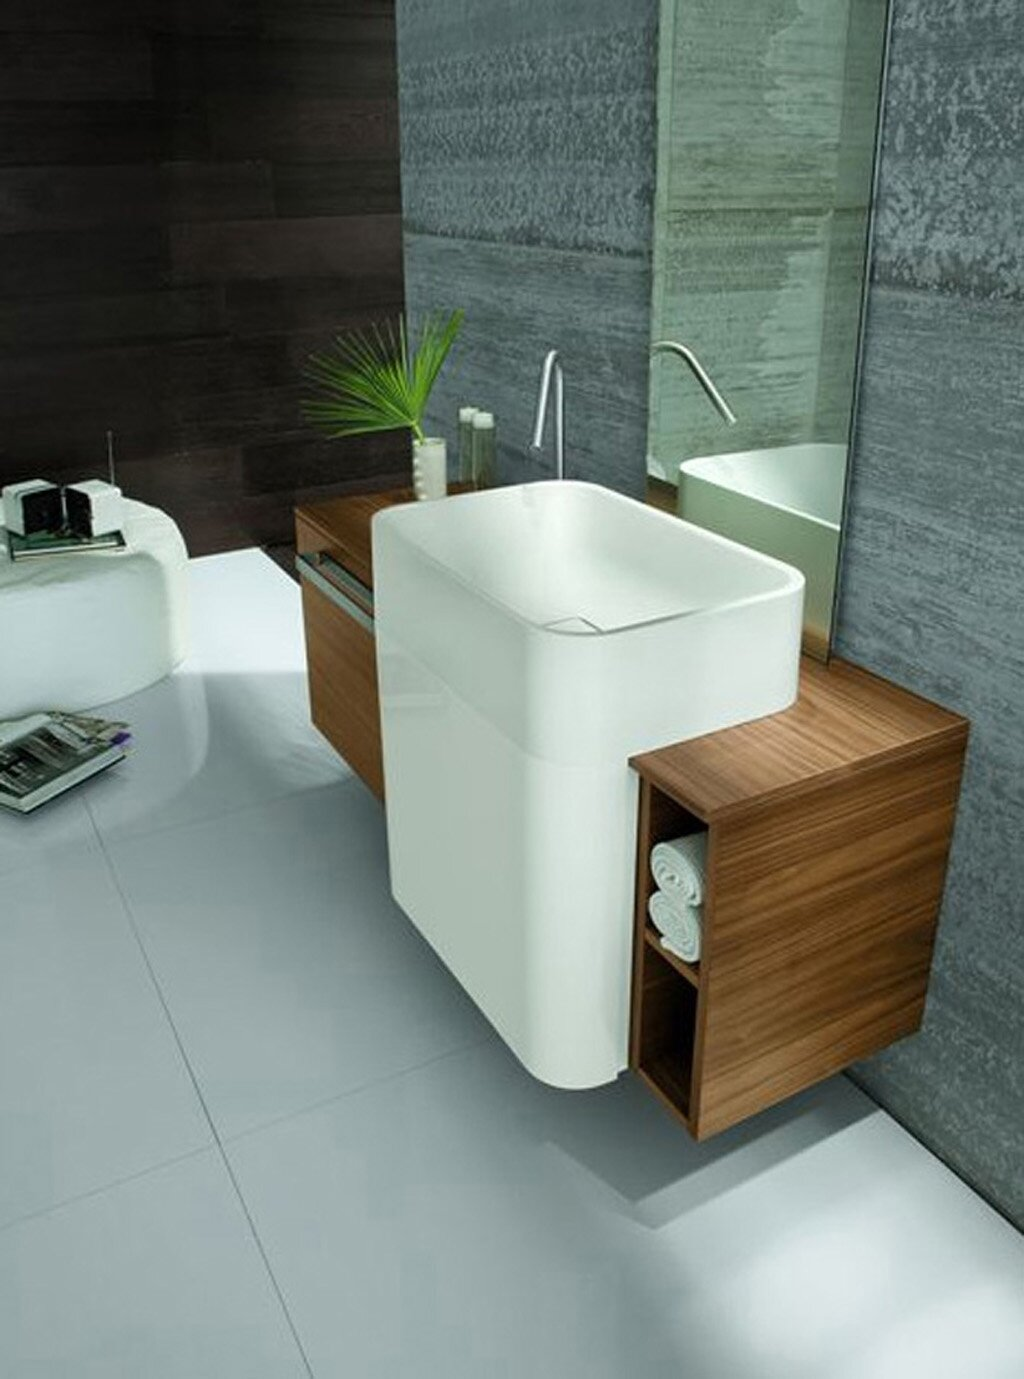 Top 15 bathroom sink designs and models mostbeautifulthings for Bathroom sink designs